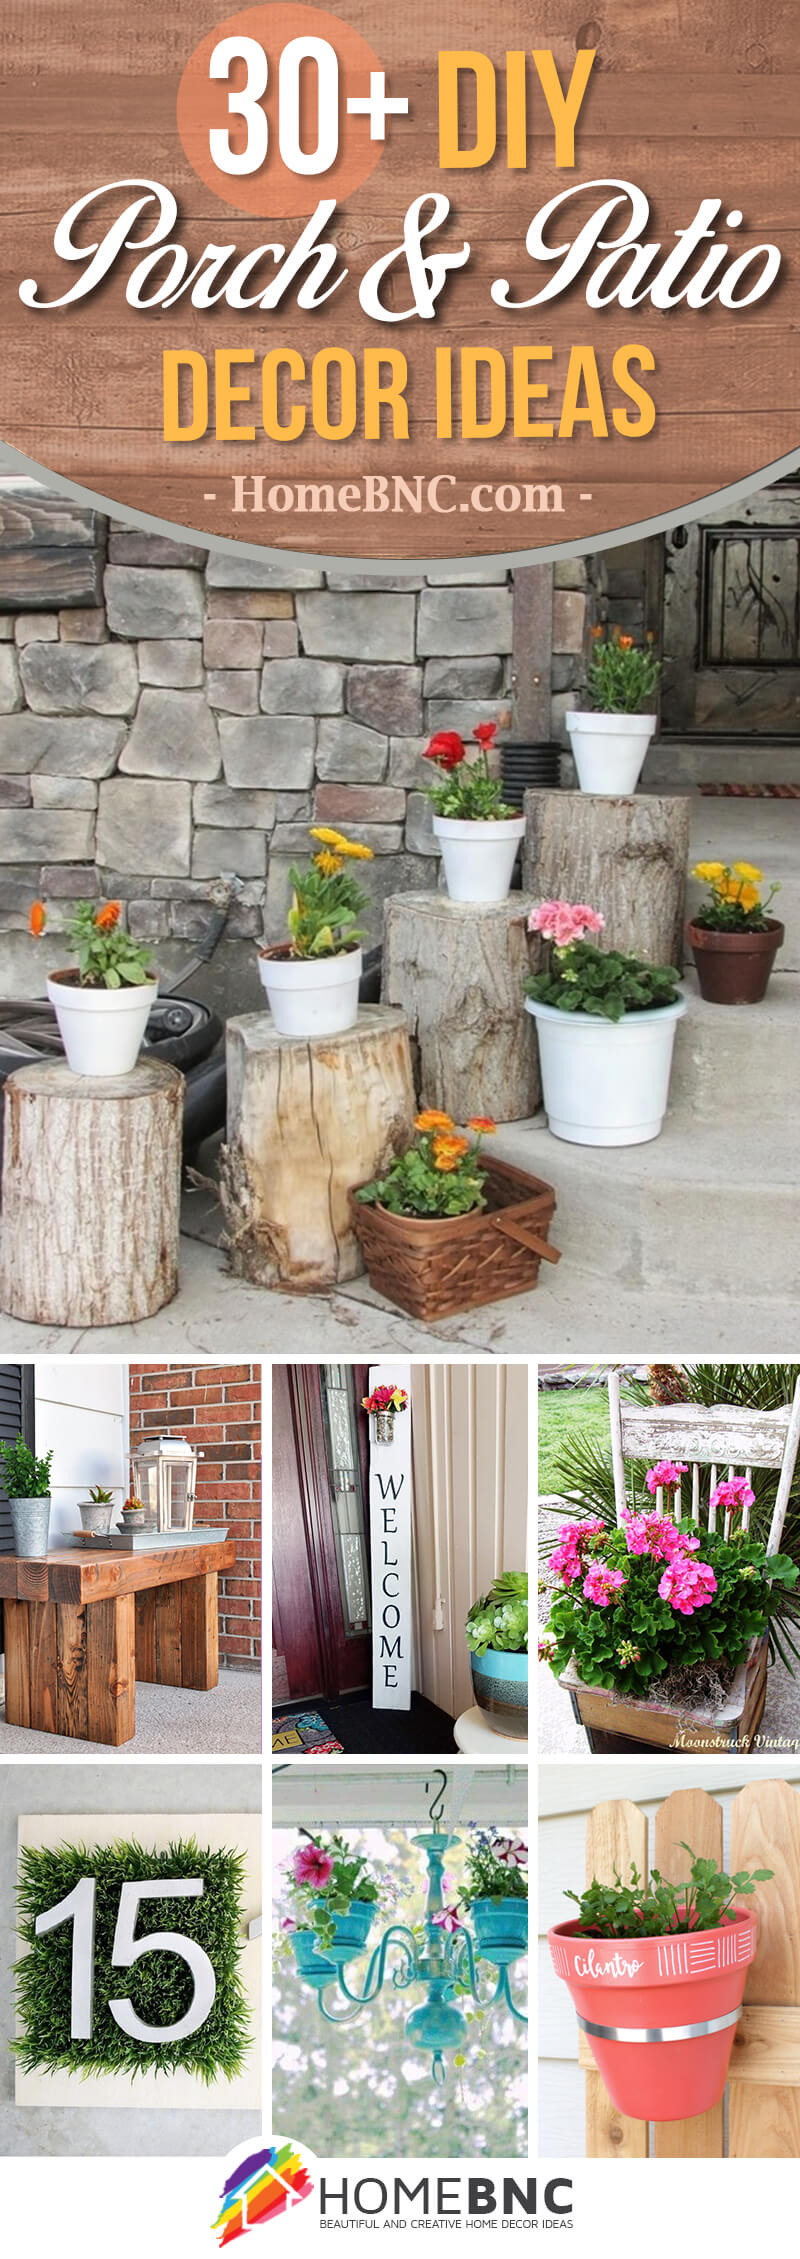 DIY Porch and Patio Decor Ideas